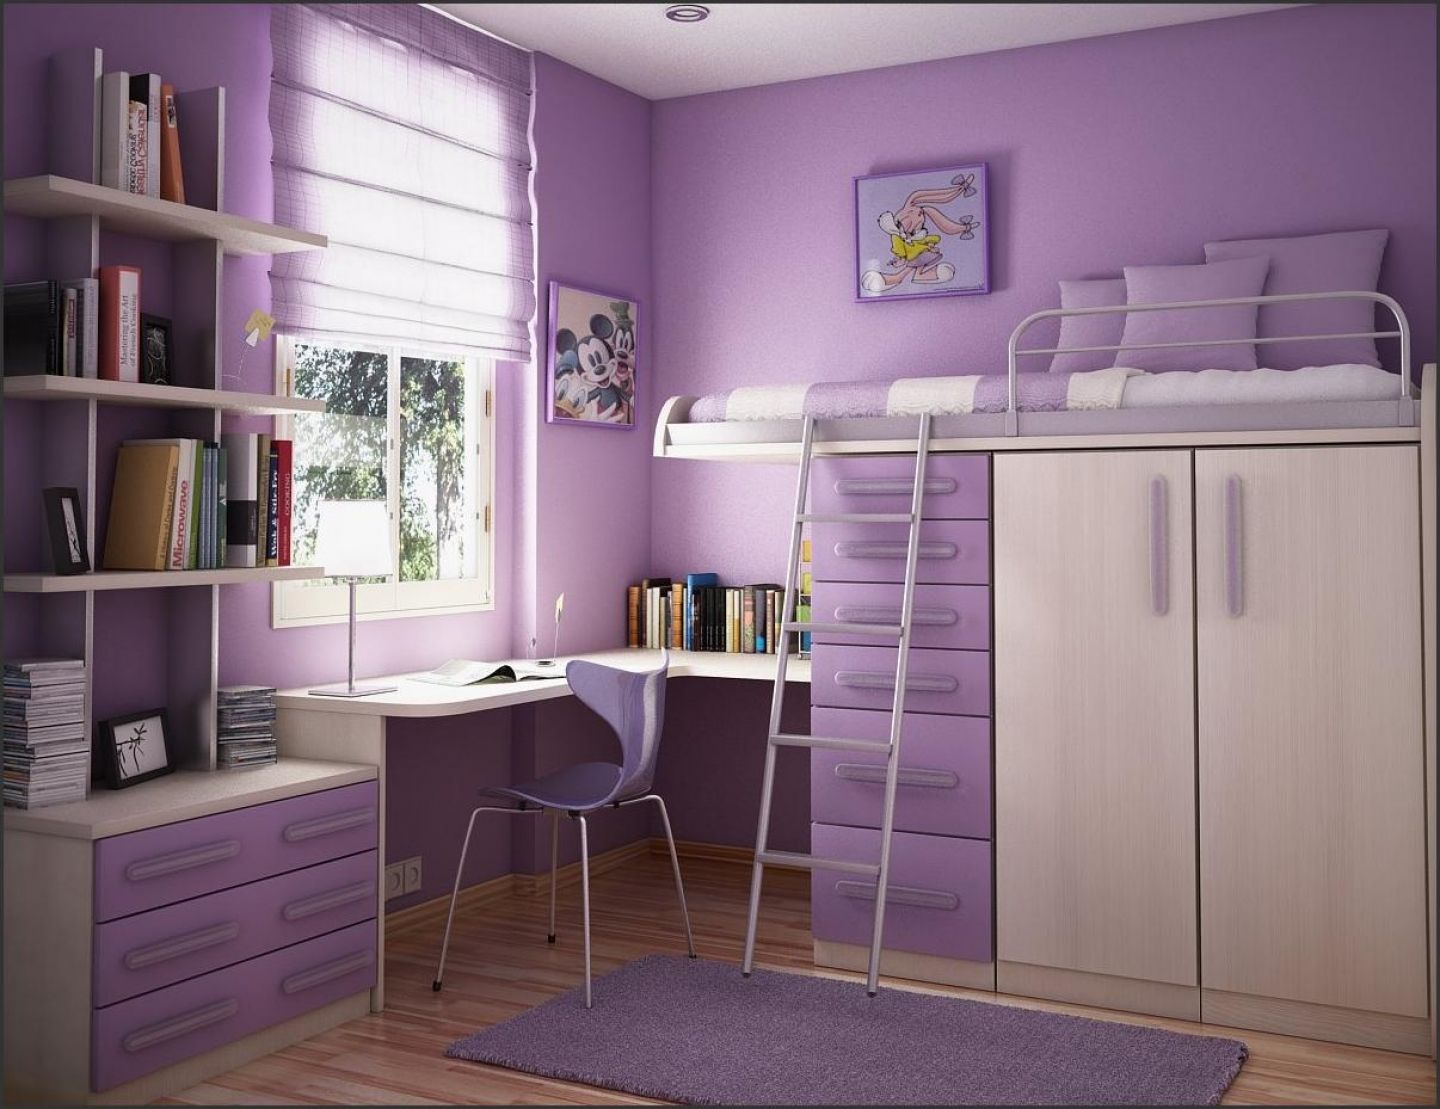 Tween Girls Room Decor Teen Girl Bedroom Decorating Ideas .0613 140358 Bedroom